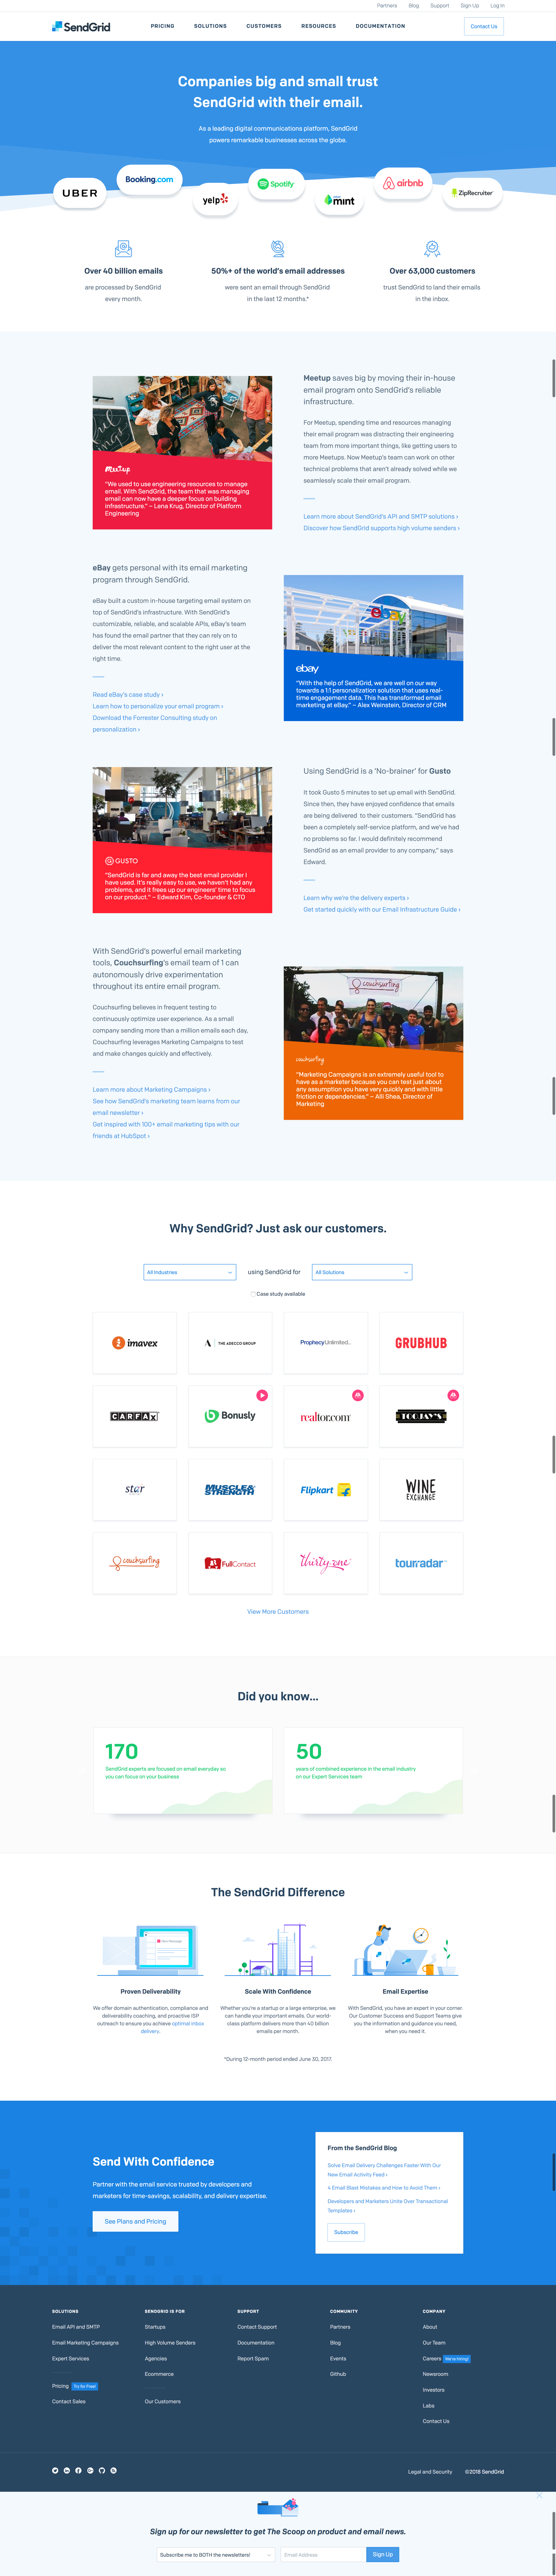 Pin By Jonathan Lutz On Saas Webdesign Web Design Web Design Inspiration Cloud Services